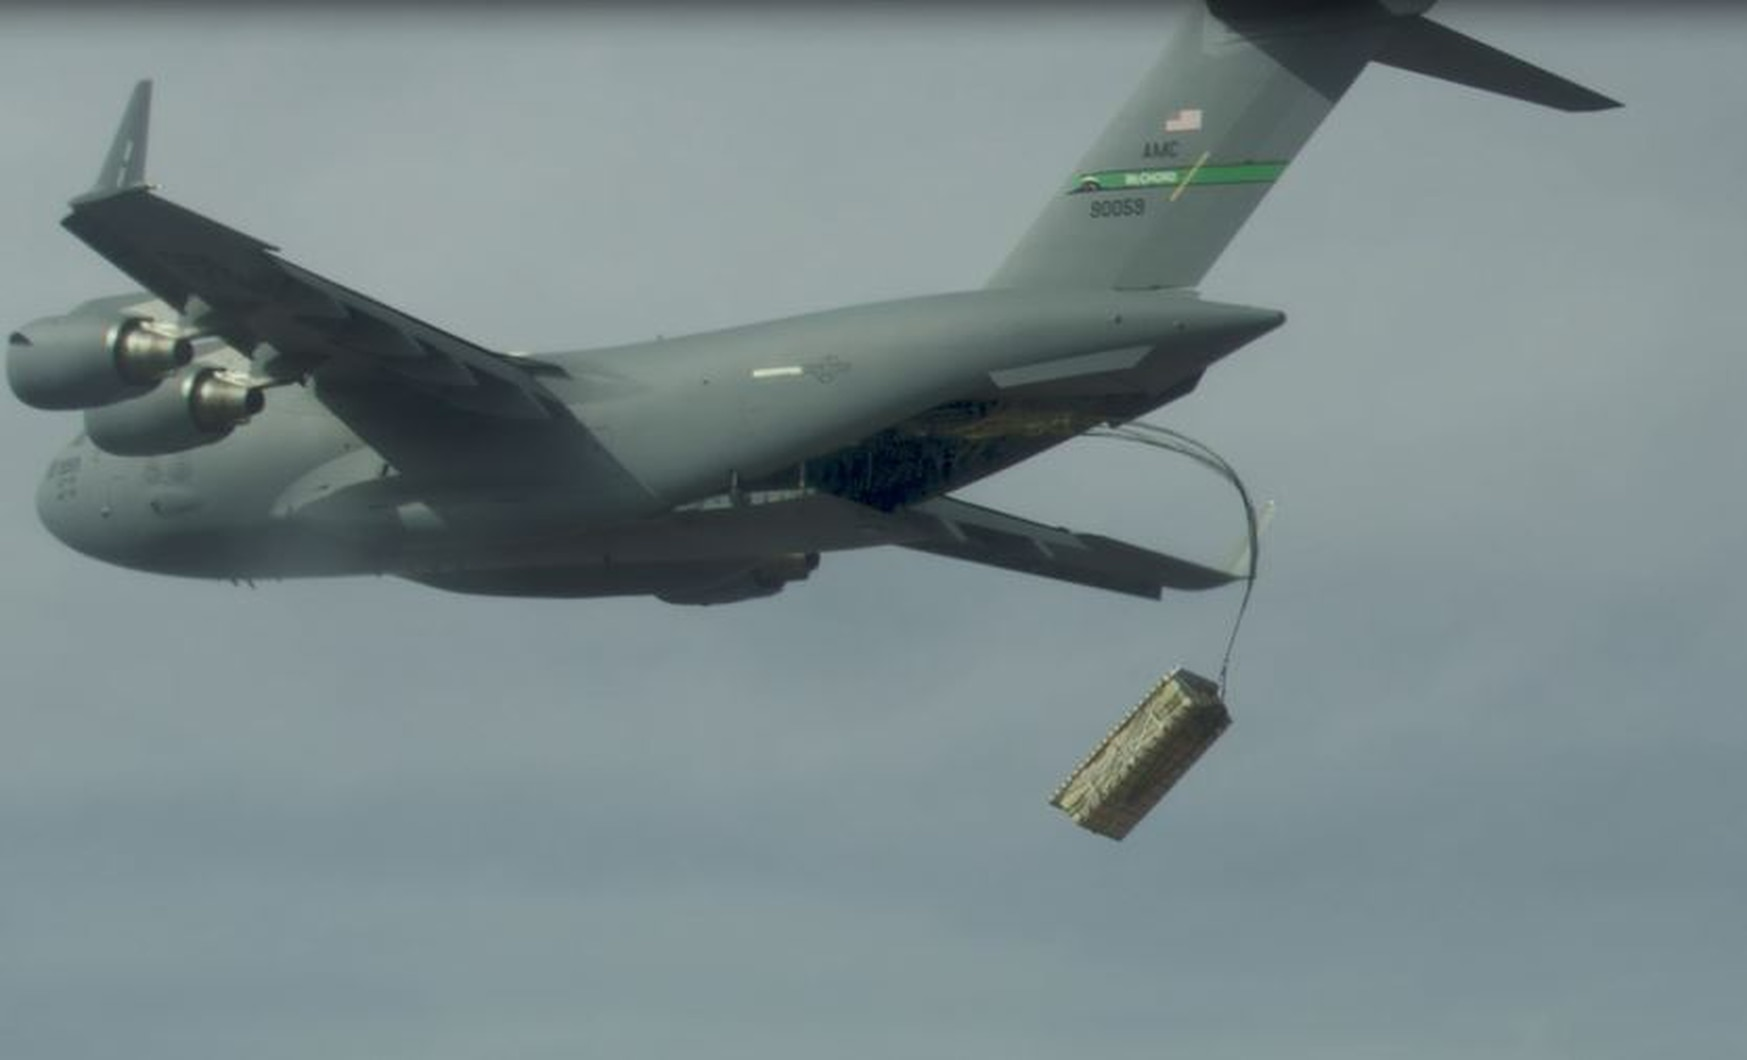 A high-altitude airdrop of palletized munitions (JASSM simulants) from a C-17 using standard operational airdrop procedures was conducted during the U.S. Air Force's testing of Advanced Battle Management System technology. (U.S. Air Force)